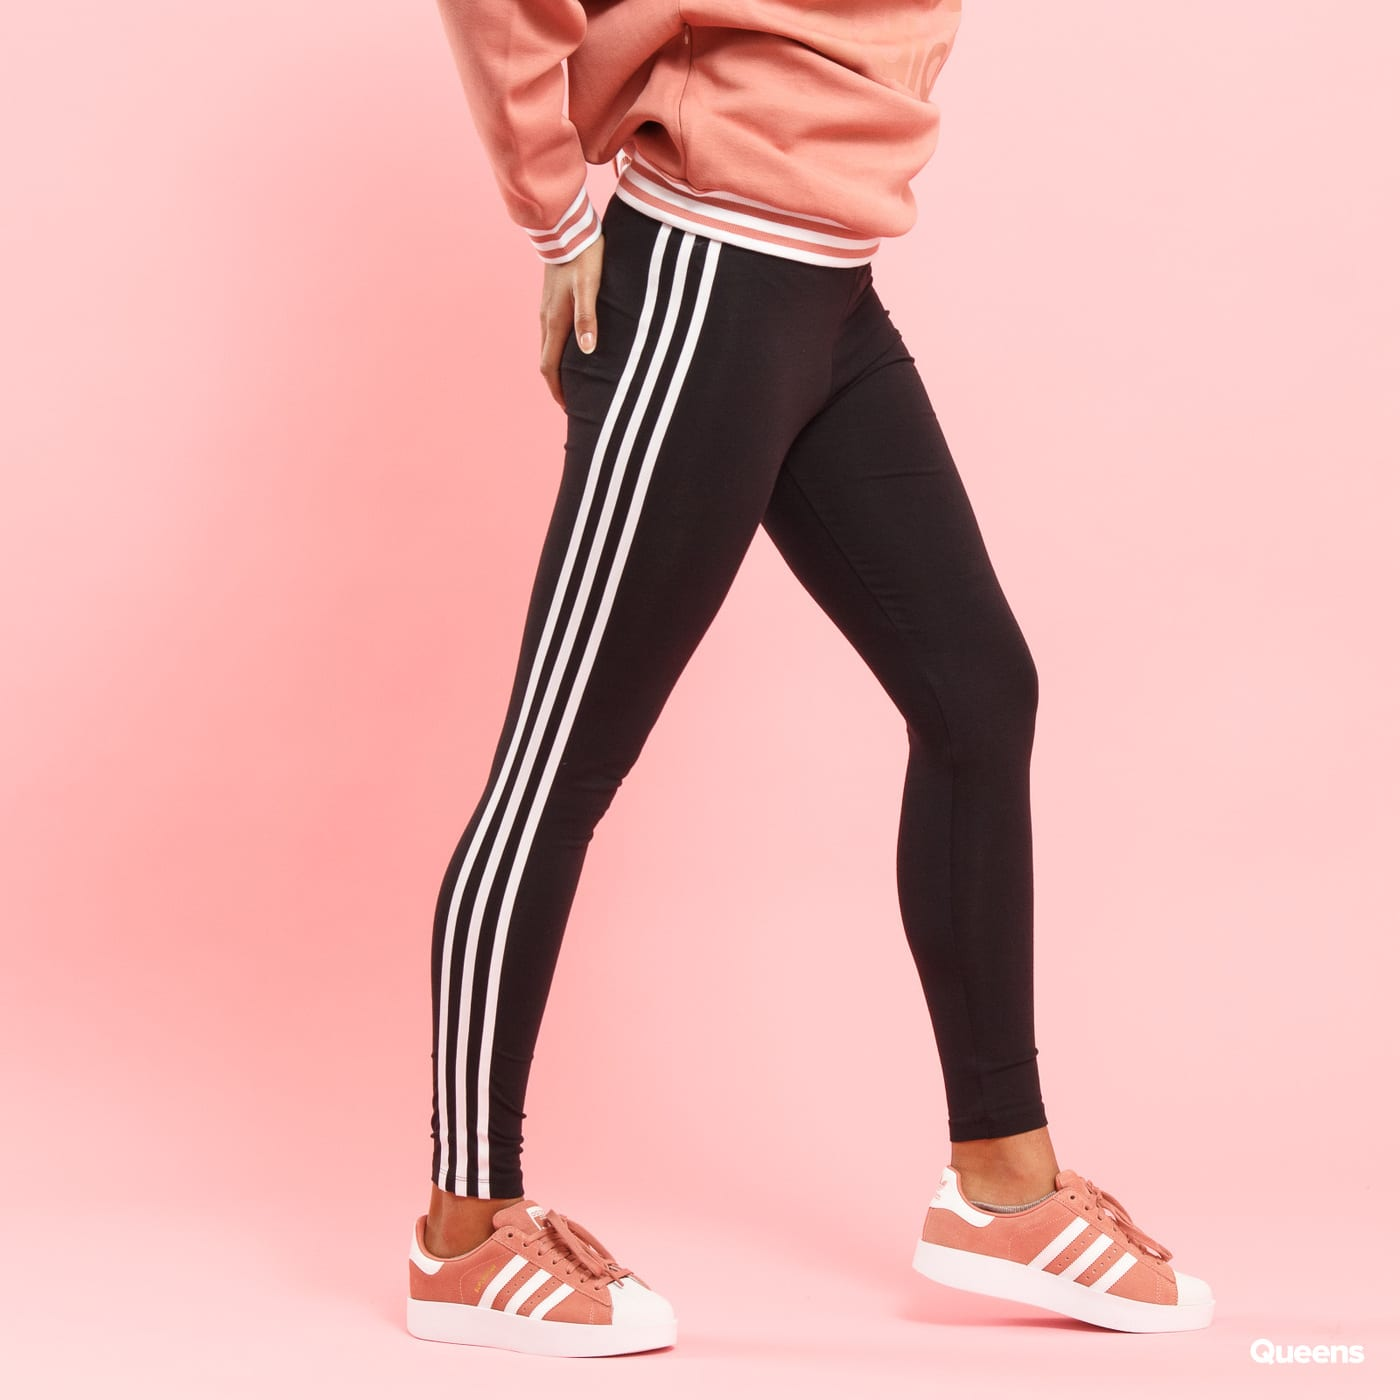 305e637aaa6 Legíny adidas 3 Stripes Tight (CE2441) – Queens 💚